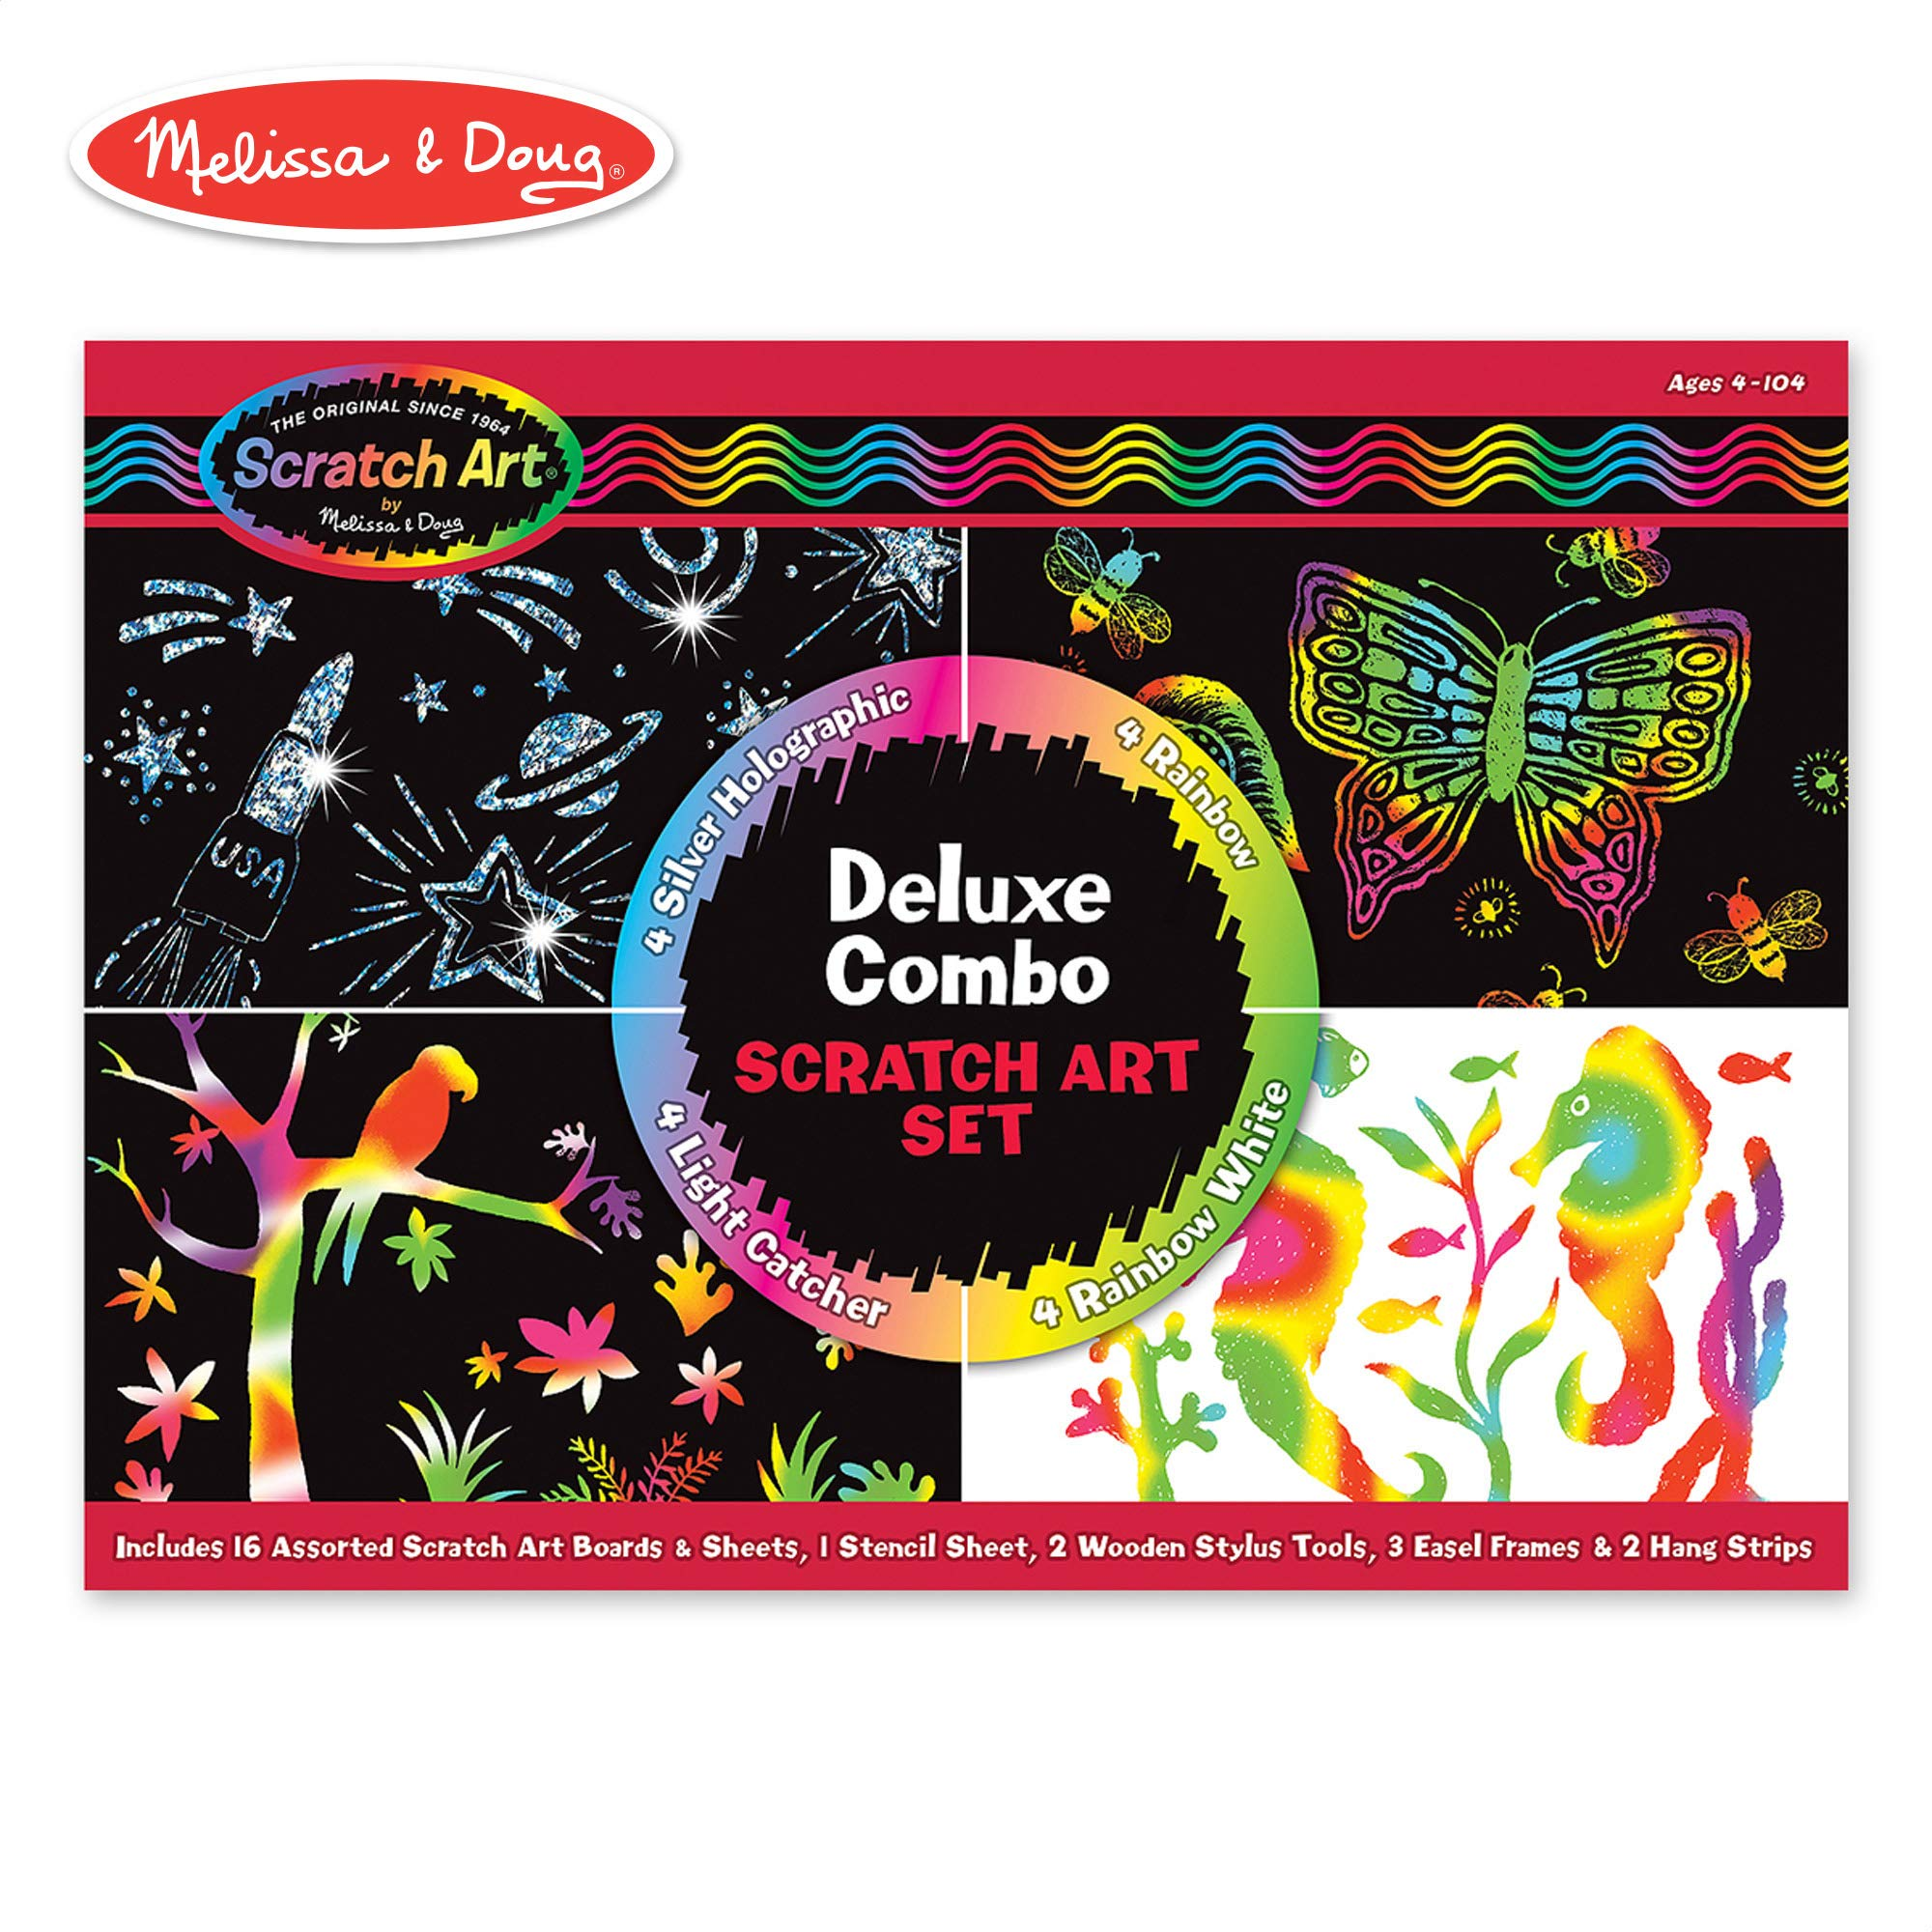 Melissa & Doug Scratch Art Deluxe Combo Set (Arts & Crafts, Hides Colors & Patterns, Easy to Use, Supplies for 16 Projects, 13.75'' H x 9.75'' W x 1.5'' L) by Melissa & Doug